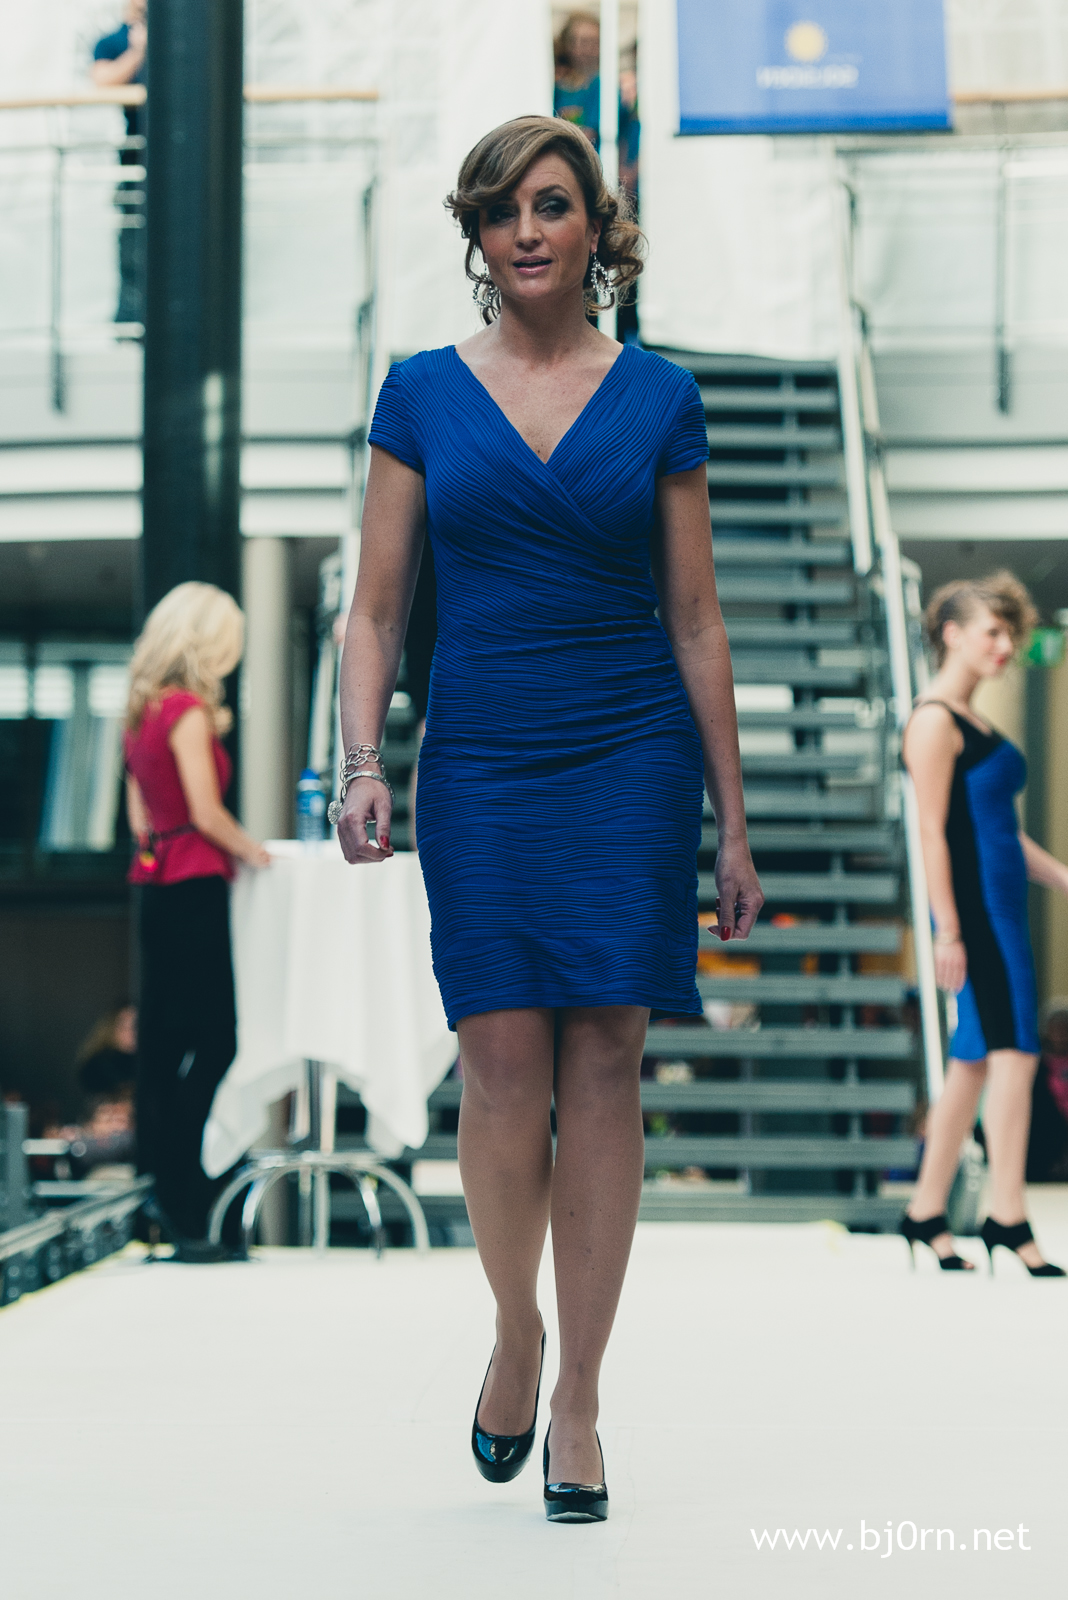 Stylist Line Solbakken - Fashion show at Solsiden Senter - October 2012